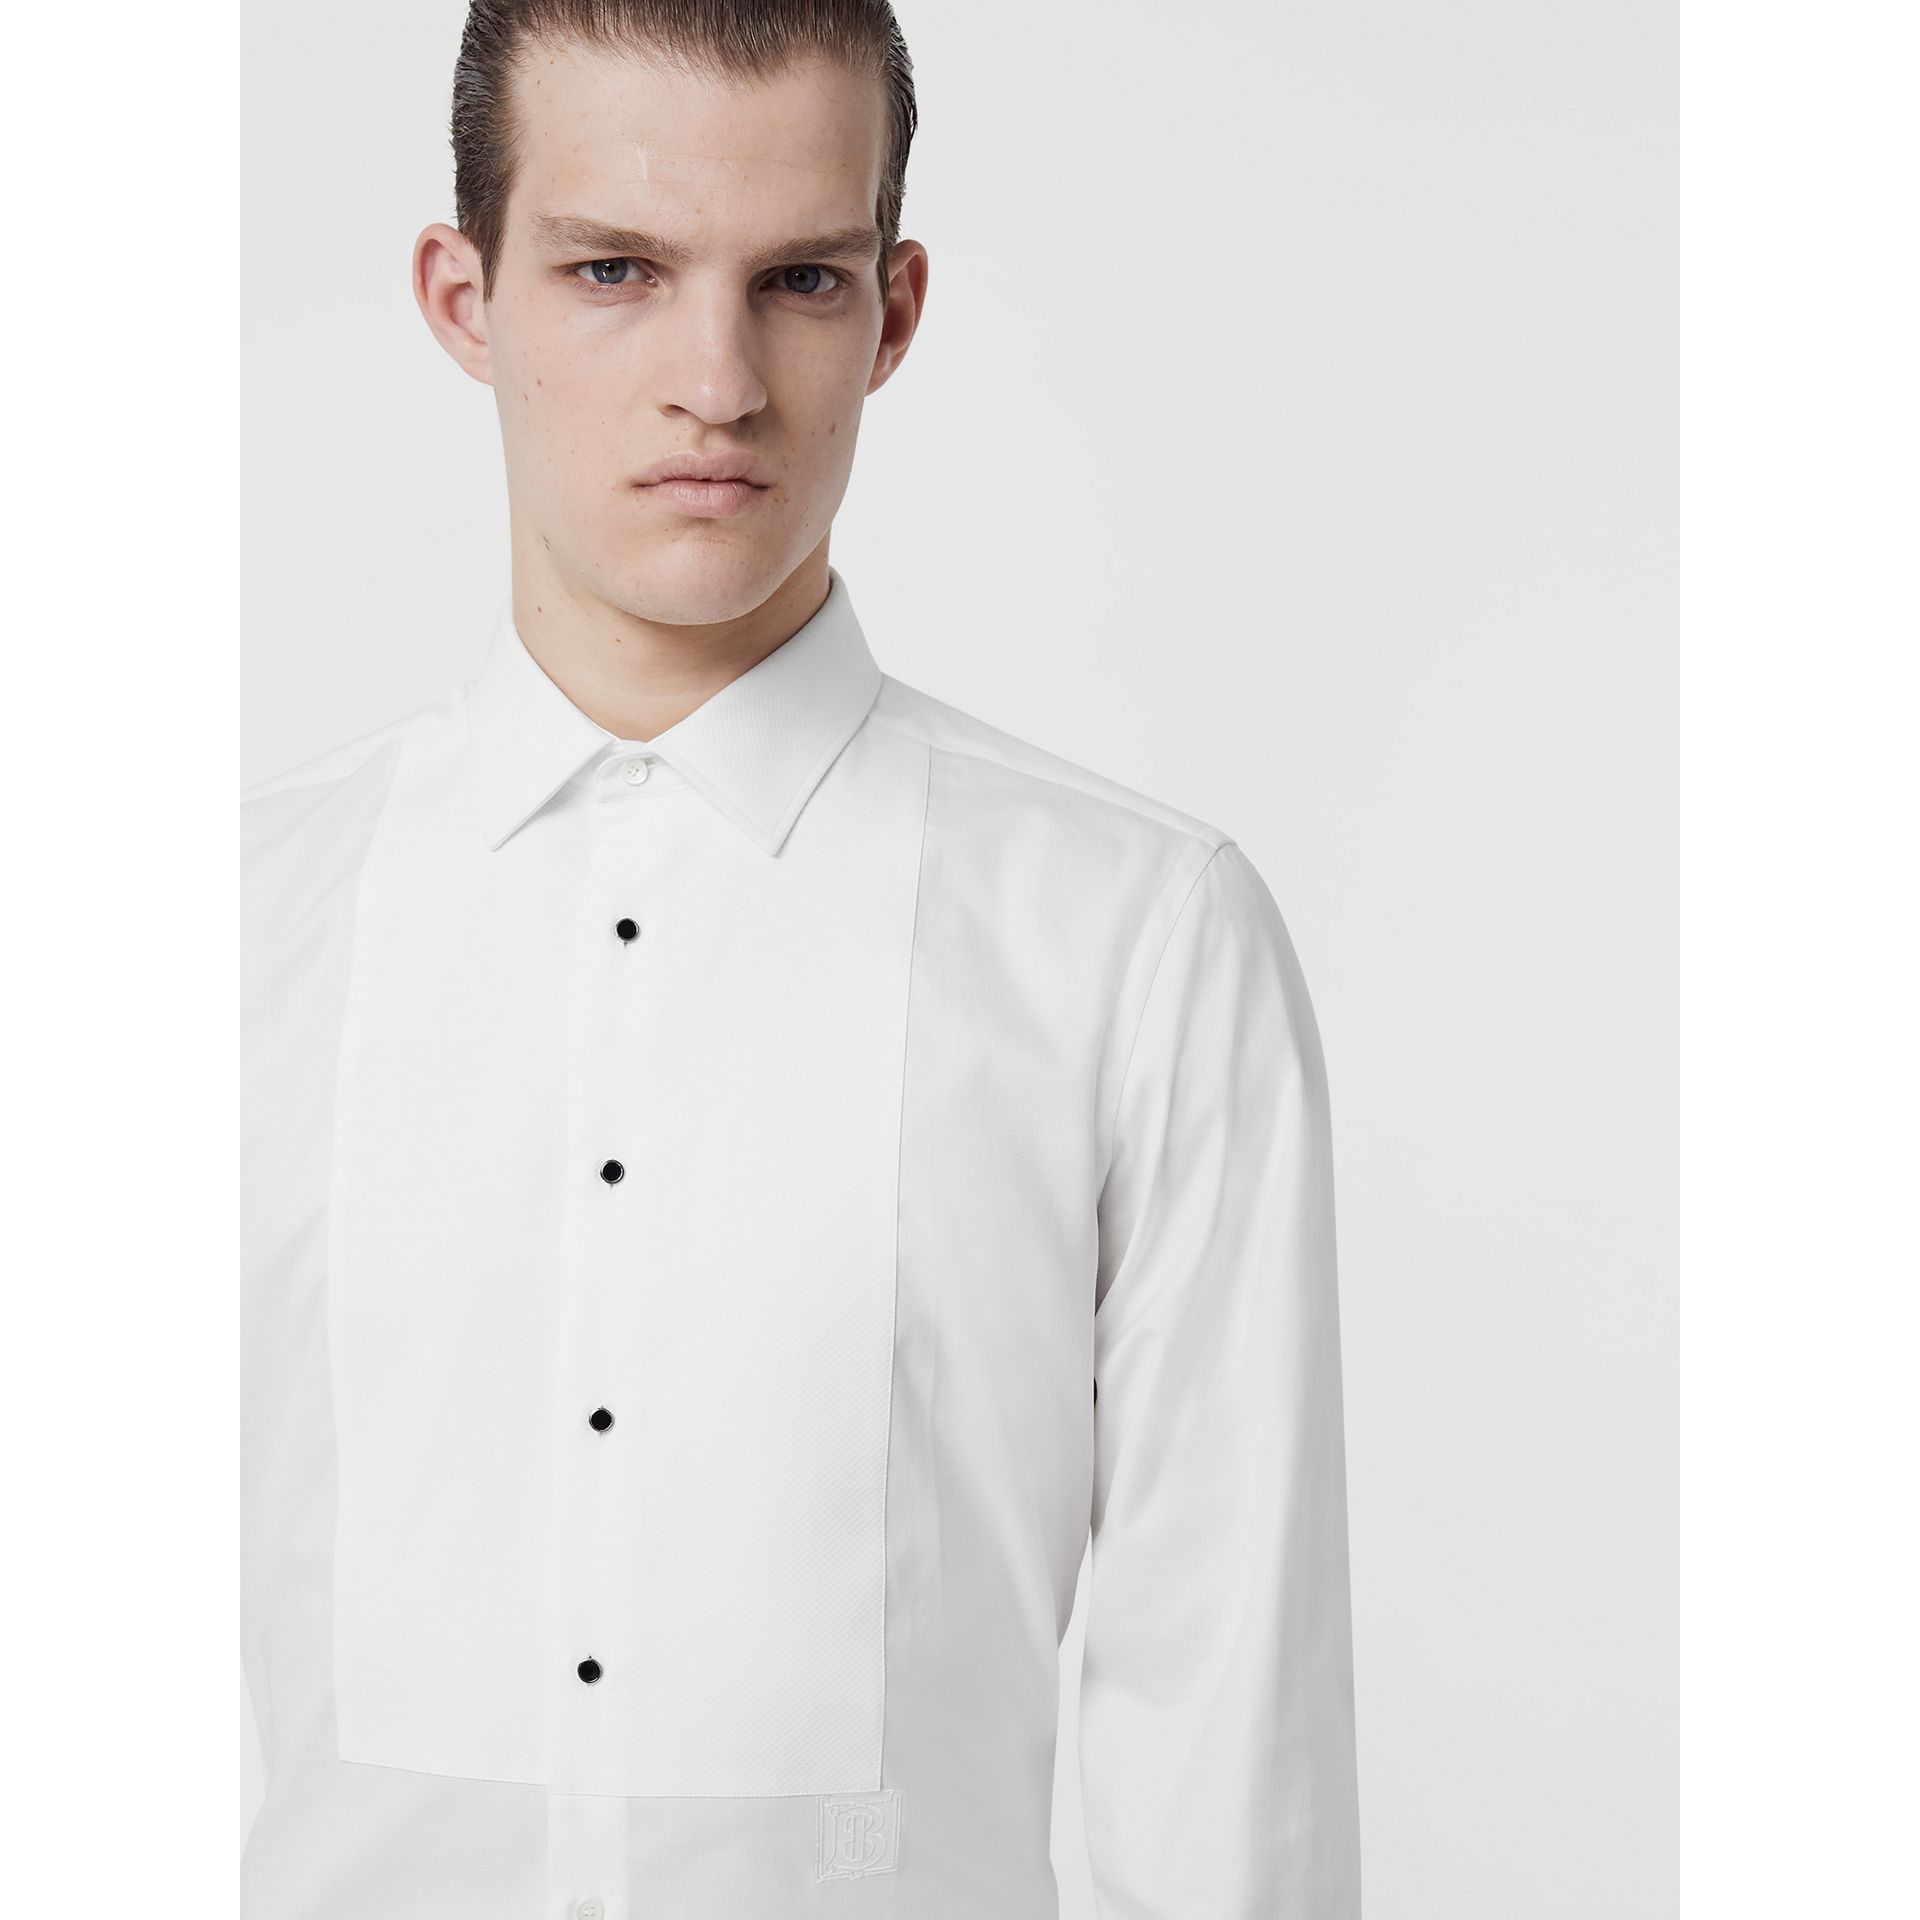 Panelled Bib Cotton Oxford Dress Shirt in White - Men | Burberry Singapore - gallery image 1